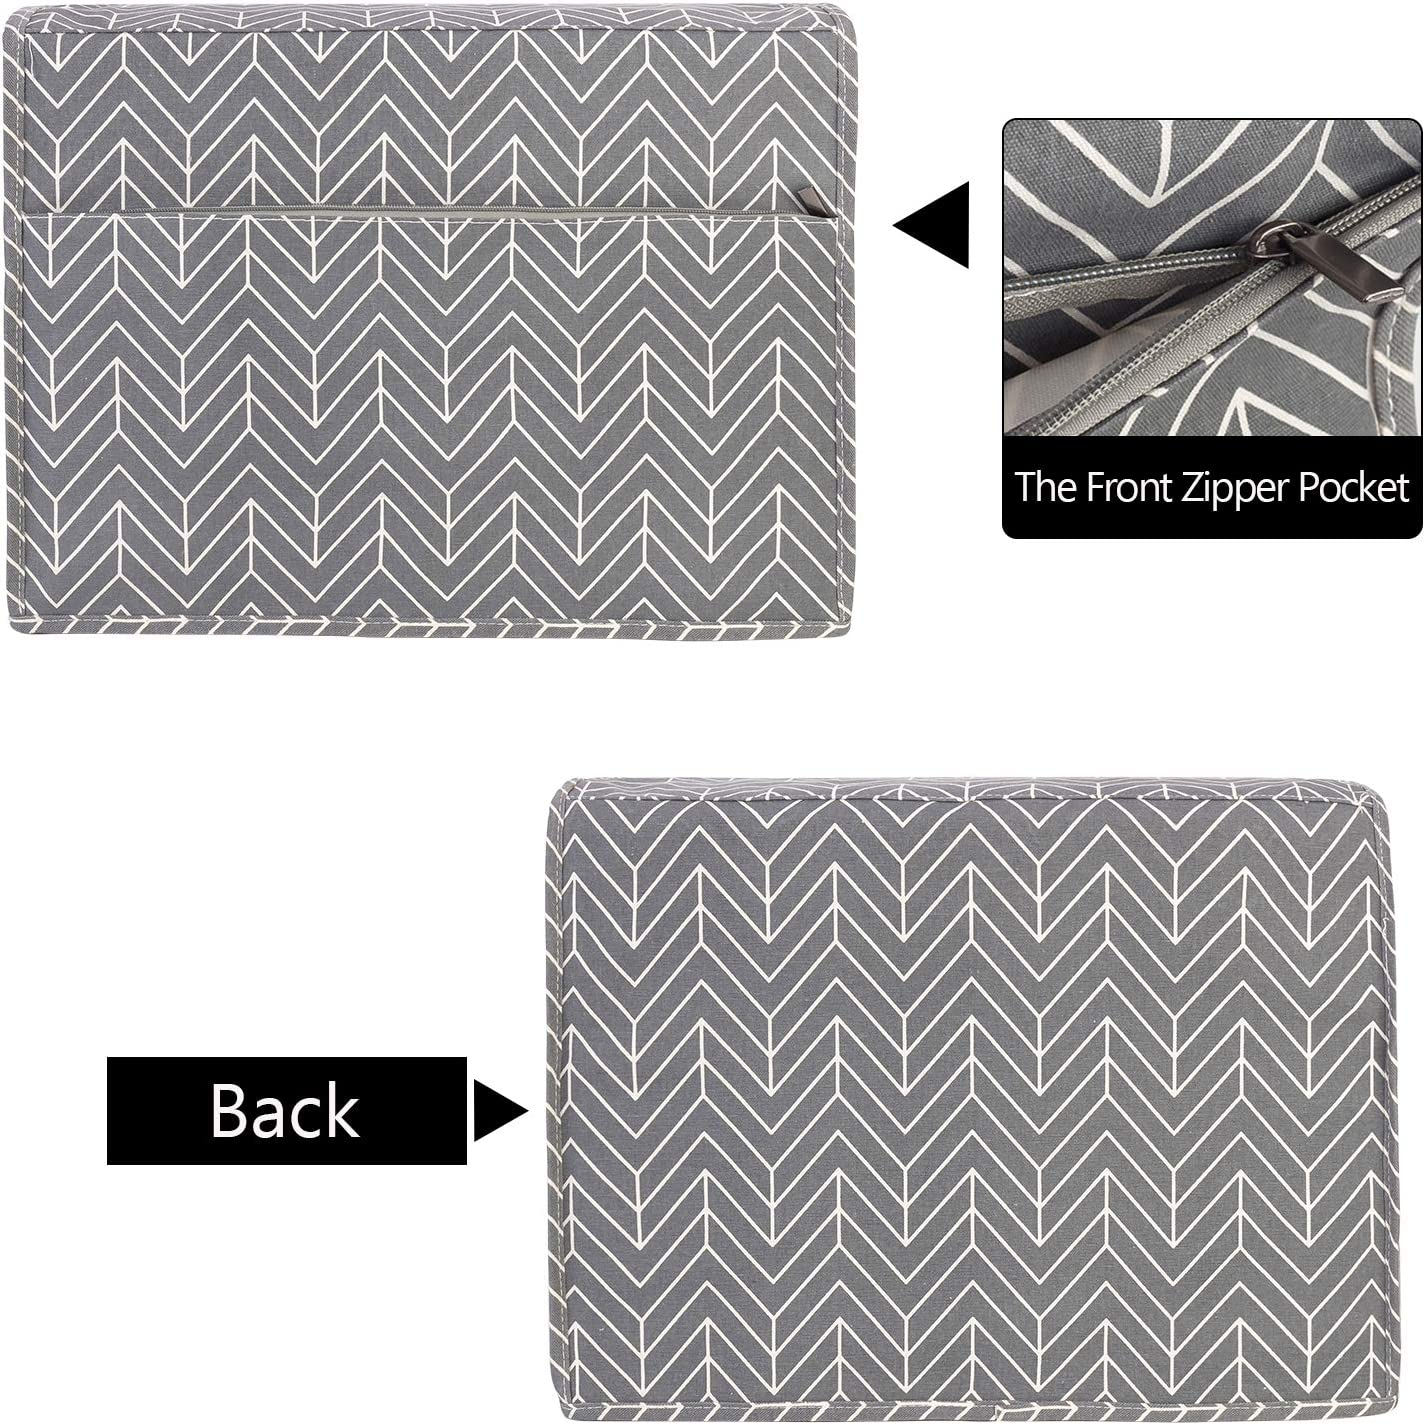 Dust Cover with Pockets for Most Standard Sewing Machines and Accessories Yarwo Sewing Machine Cover Tree